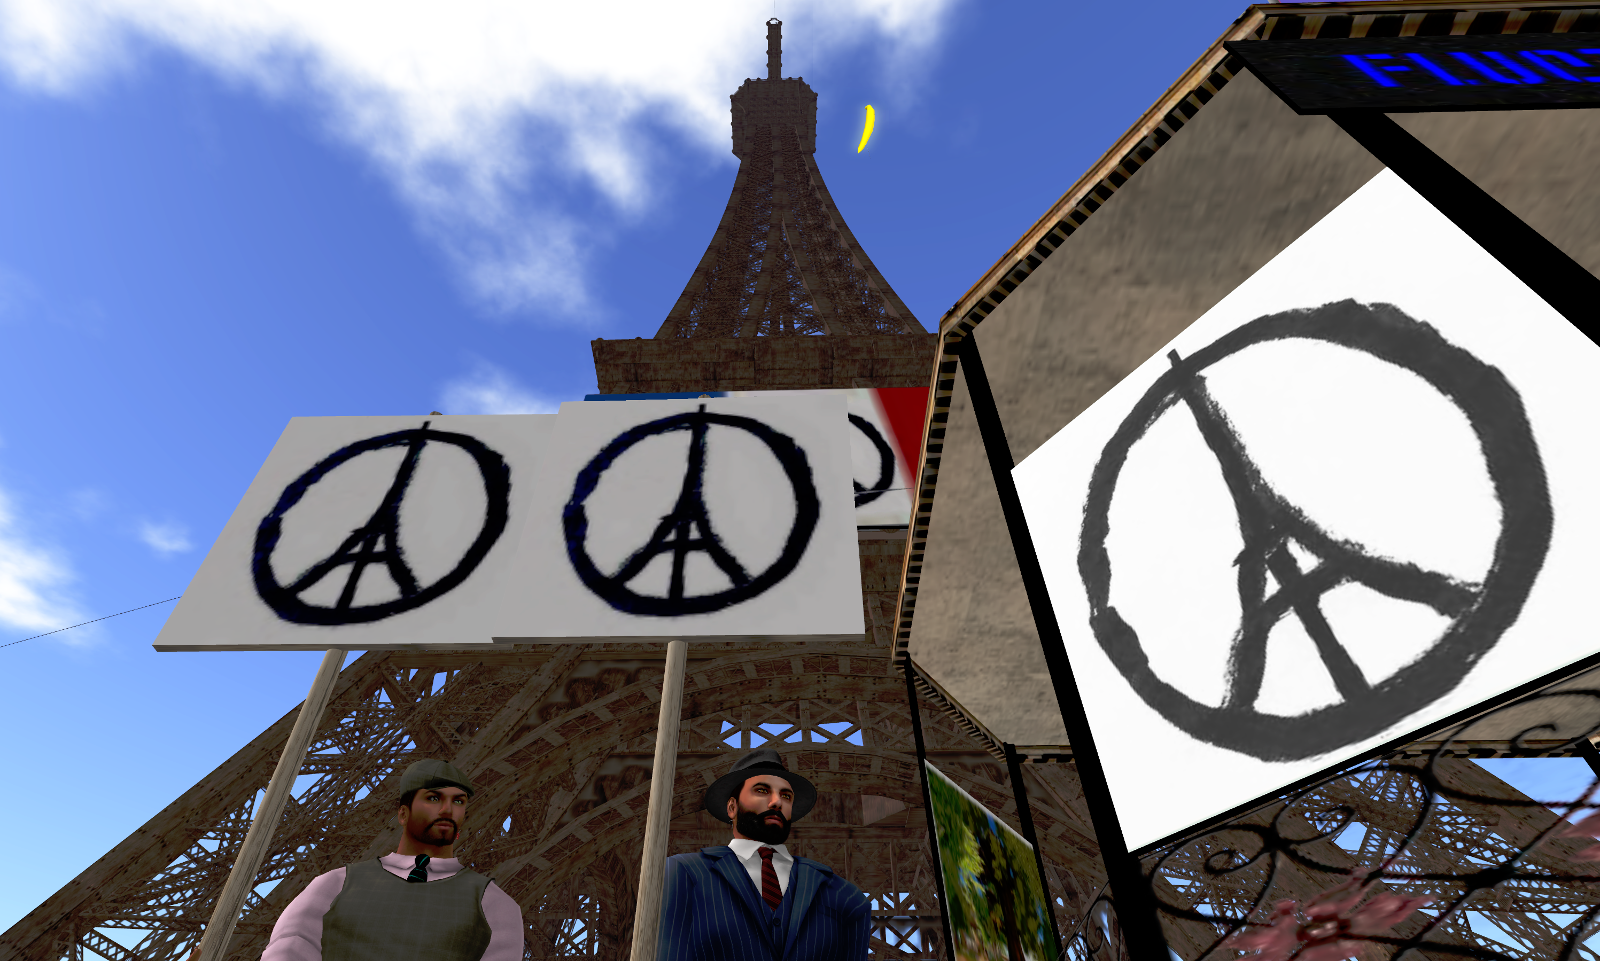 Randy and Ricco with the Peace for Paris sign at the Eiffel Tower